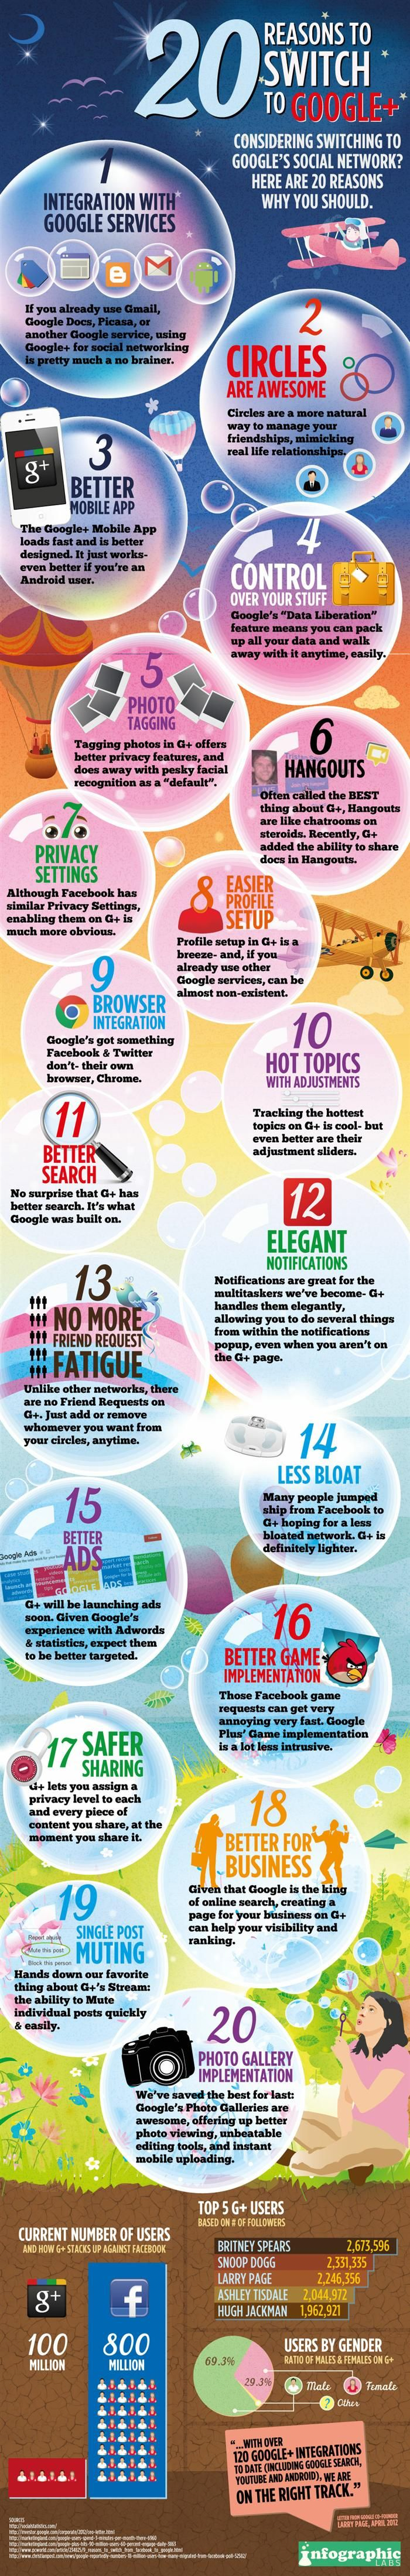 INFOGRAPHIC: 20 Reasons to Switch to Google+: Social Network, Fun Recipe, Social Media Marketing, Google, Switch, 20 Reasons, Blog, Infographic, Socialmedia